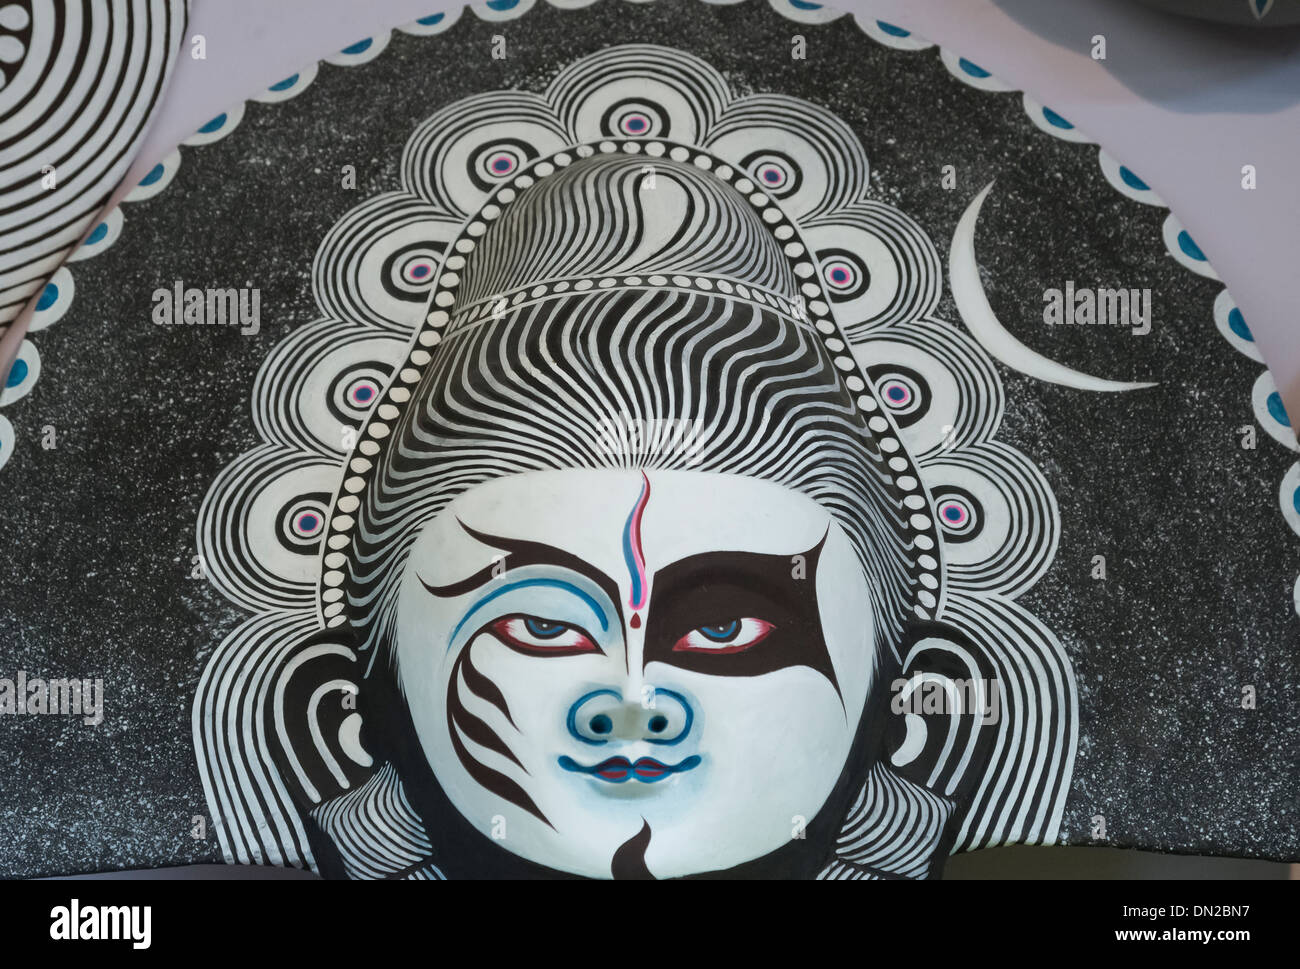 Handicraft of paper mask of Lord Shiva in colors of white and black,blue,pink indicating various qualities of the God. - Stock Image